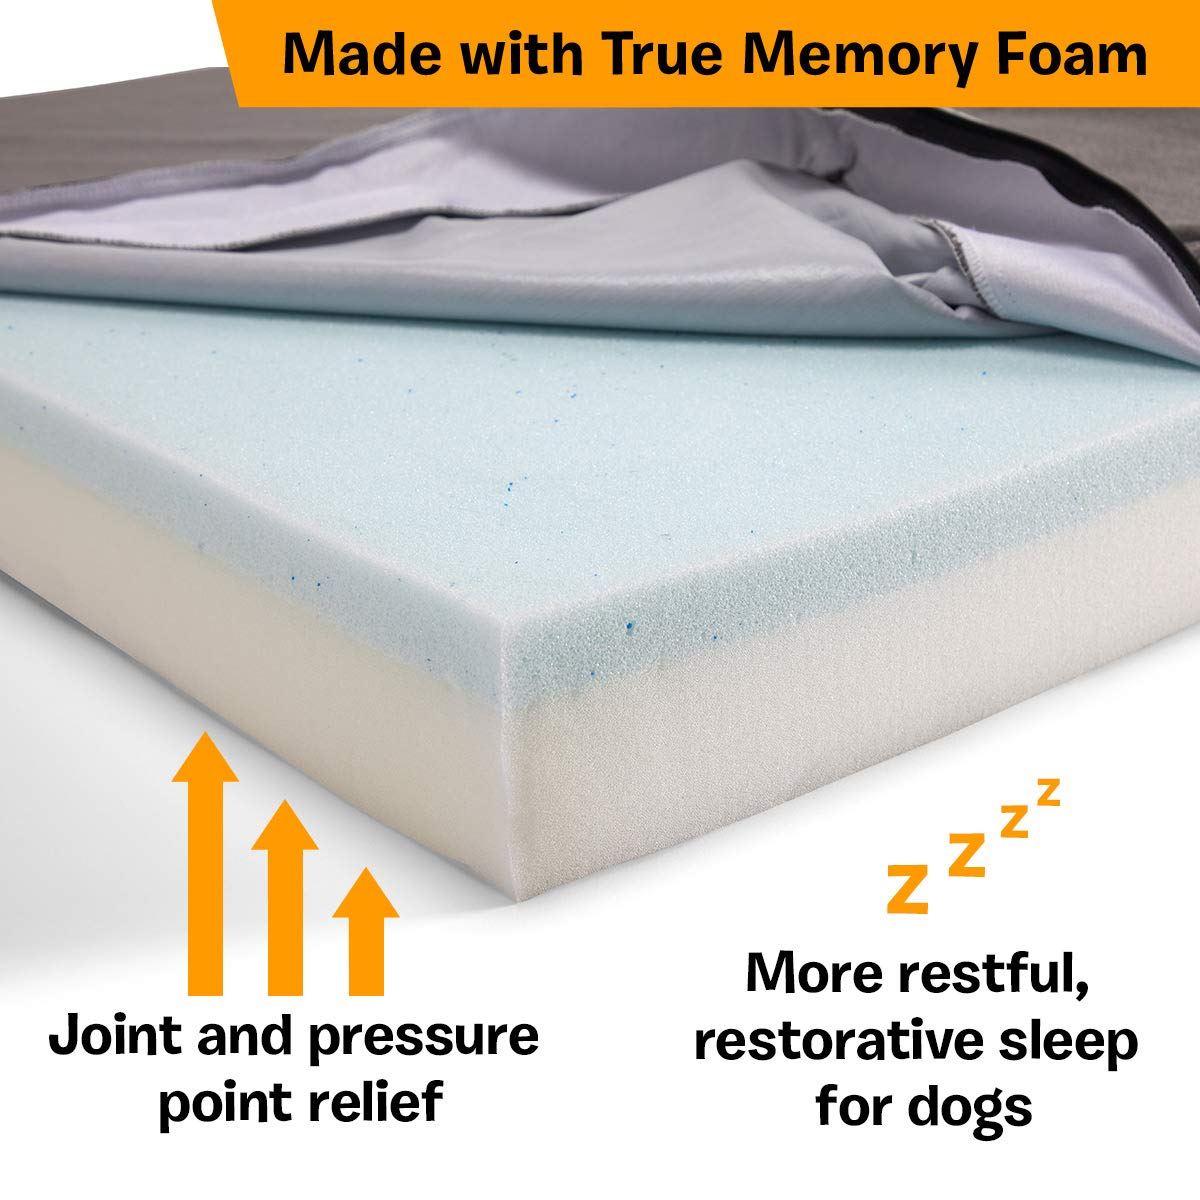 BarkBox X-Large Jumbo Gray Plush Orthopedic Memory Foam Dog Bed or Crate Mat | Removable Washable Cover - Free Surprise! by BarkBox (Image #4)